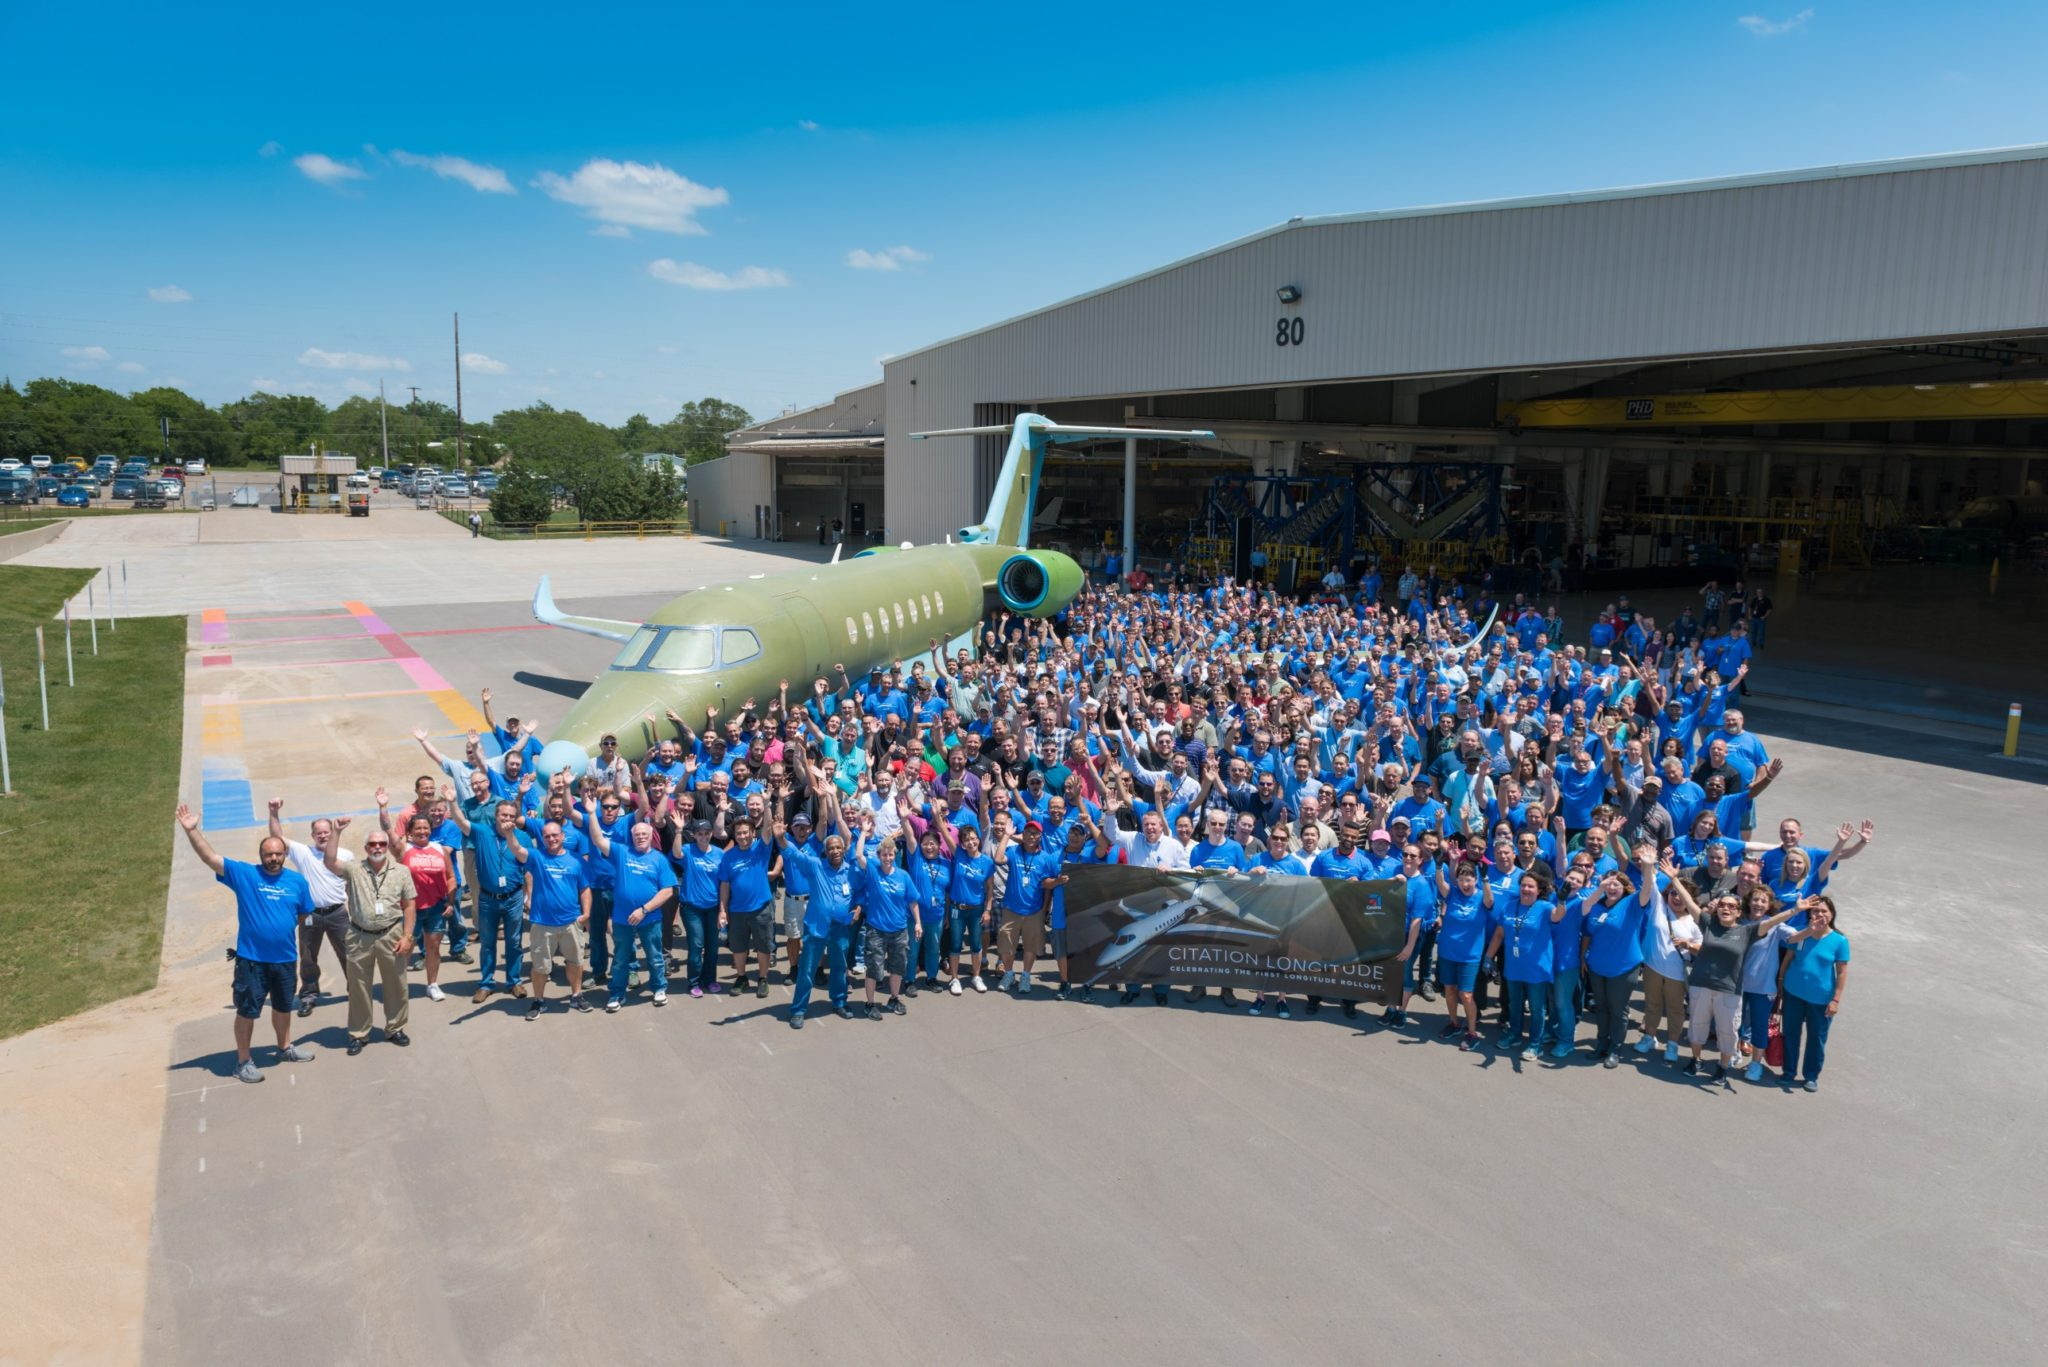 Textron Aviation rolls out first production Cessna Citation Longitude, introduces advanced manufacturing technologies to super-midsize market